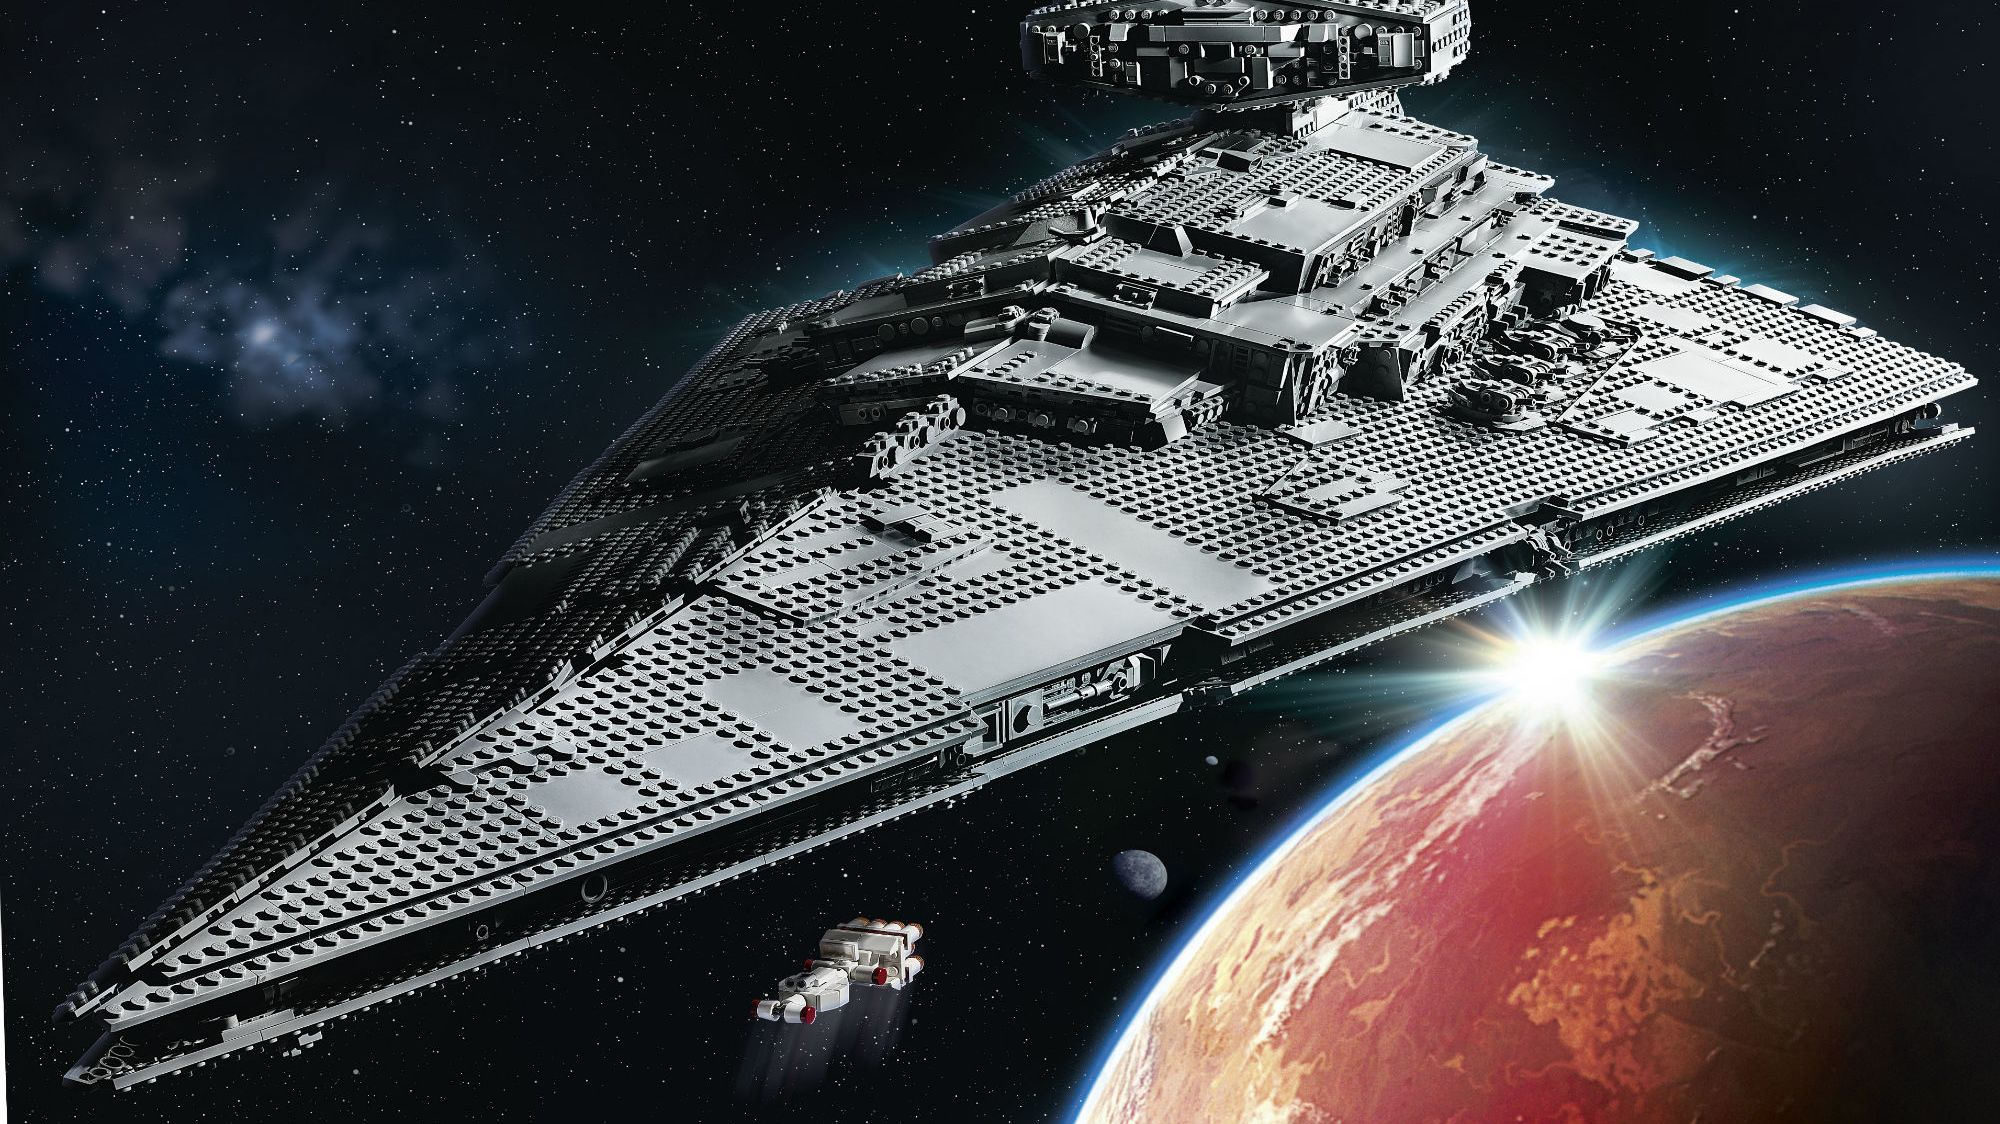 This Massive LEGO Star Wars Star Destroyer Is Nearly 4 Feet Long